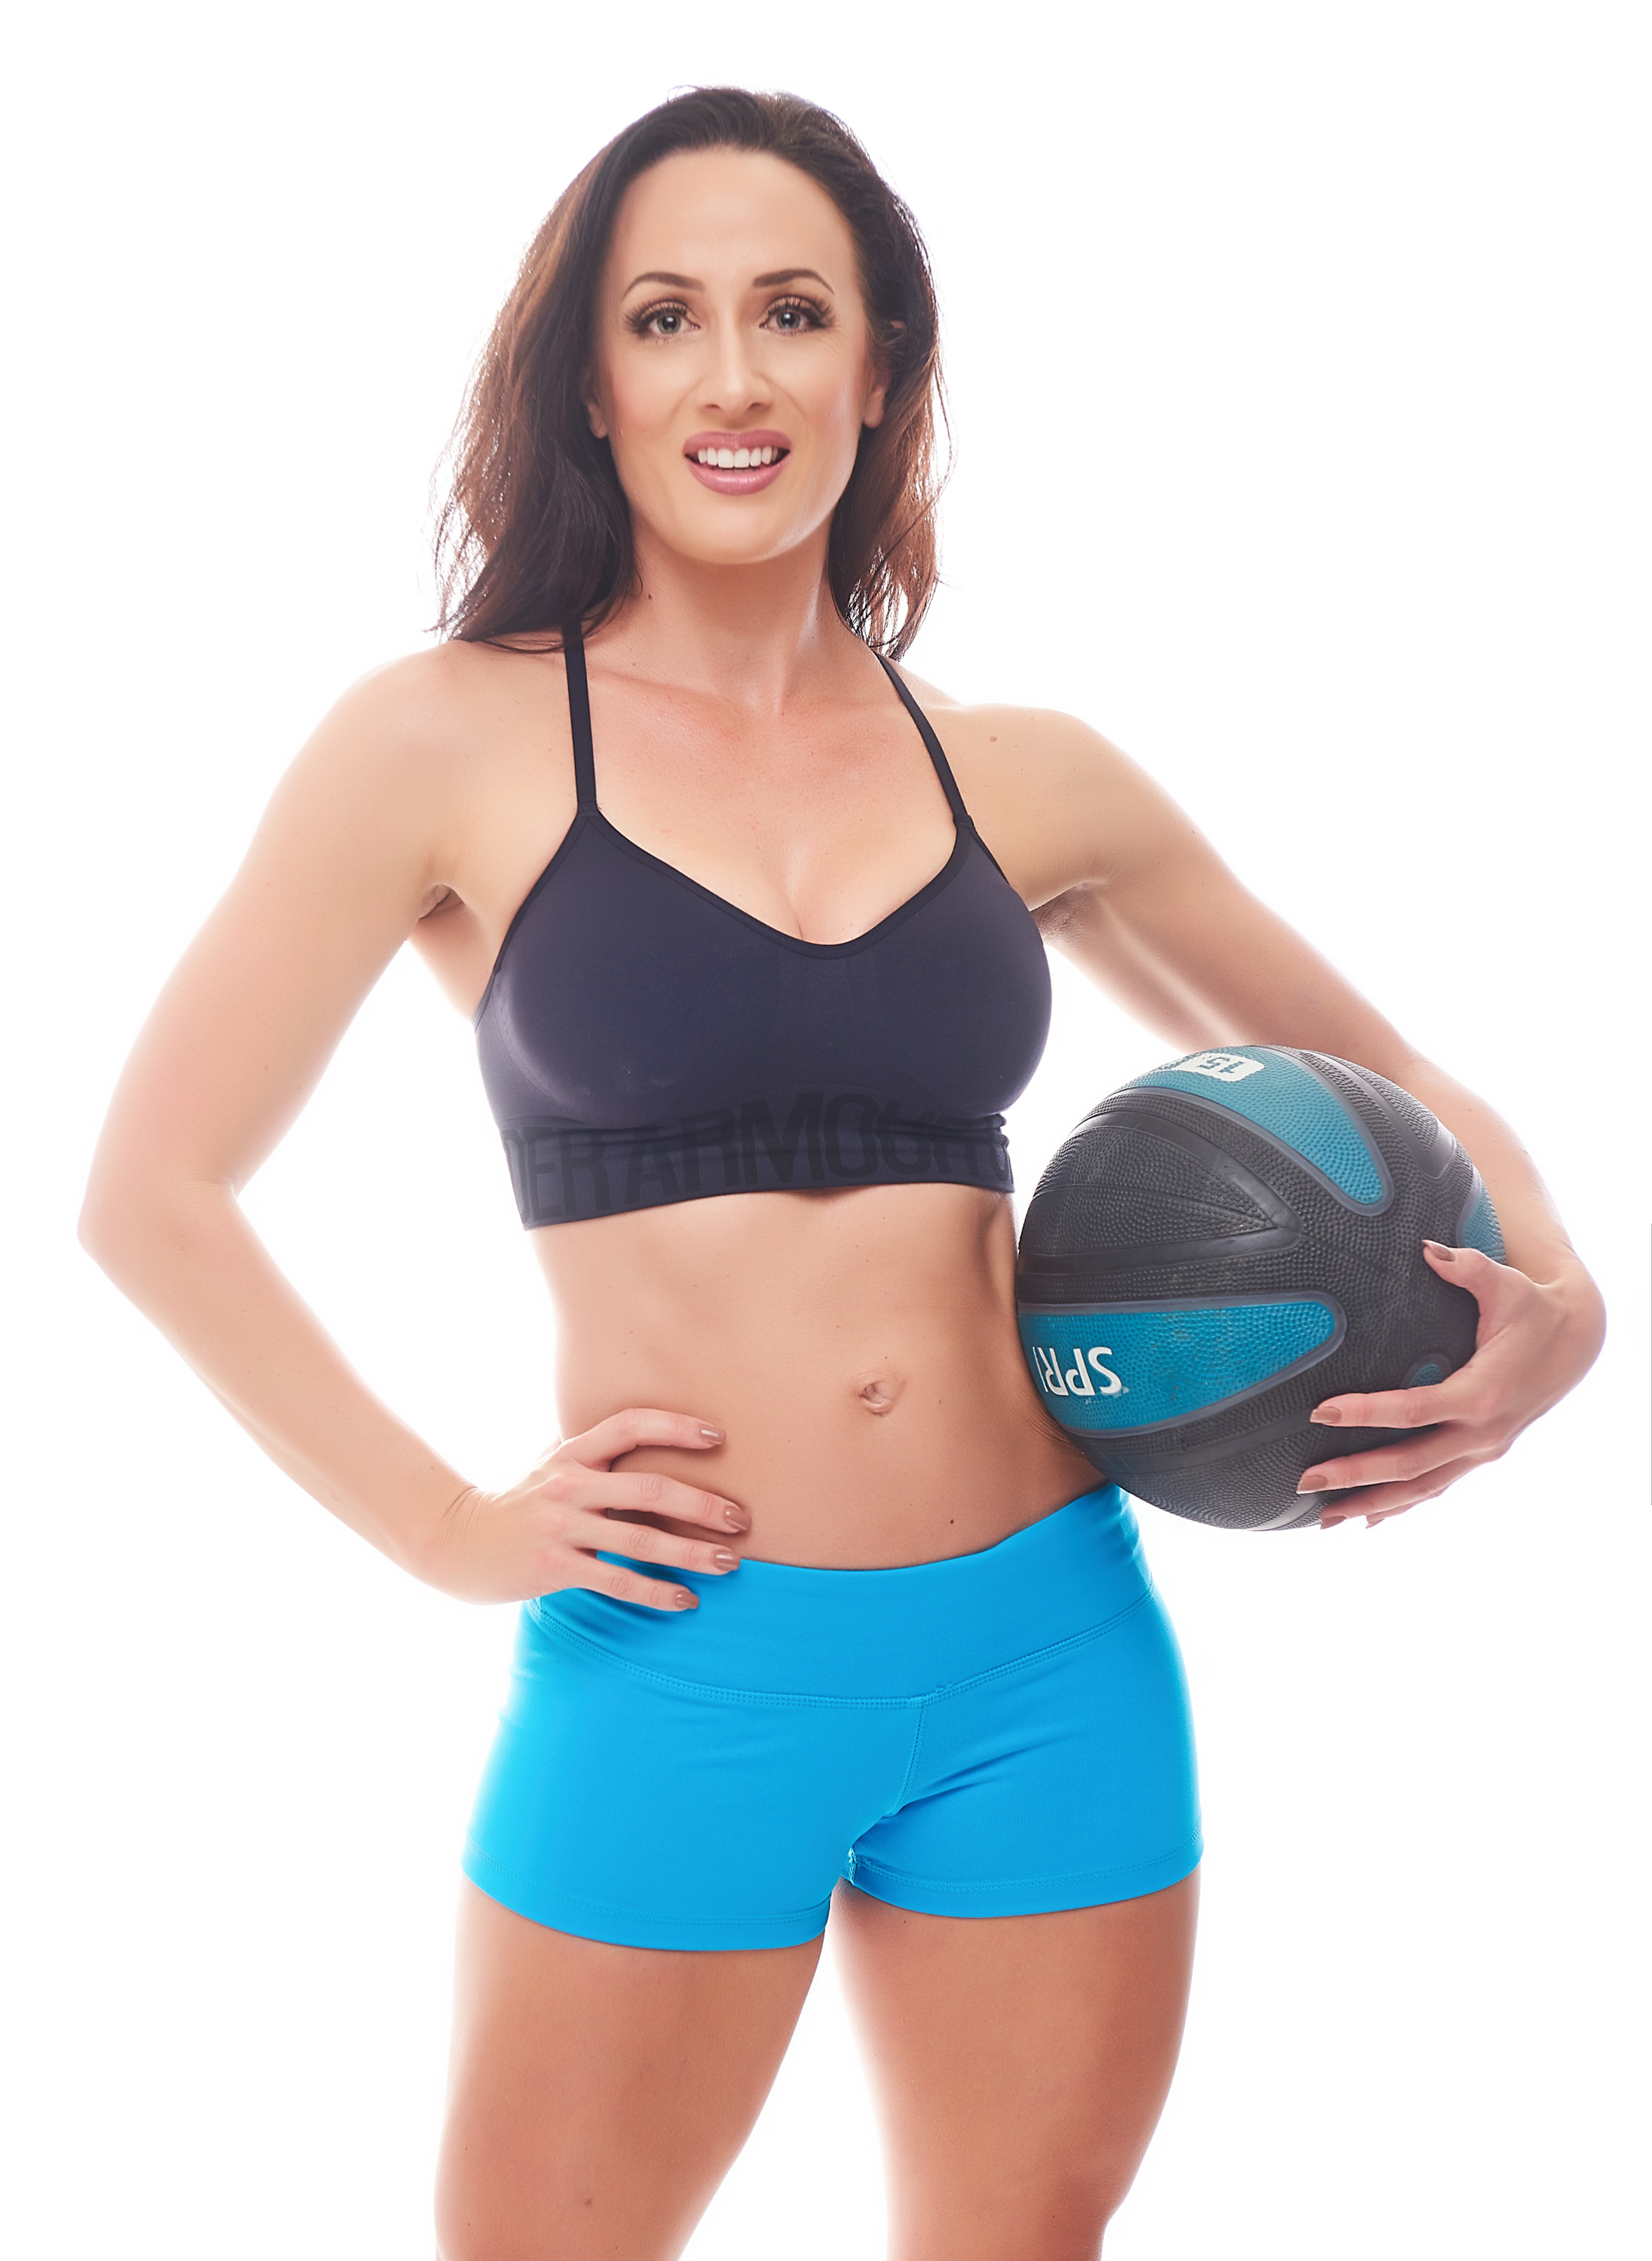 Kellie Hart Davis, founder of Fit Thrive workouts for women